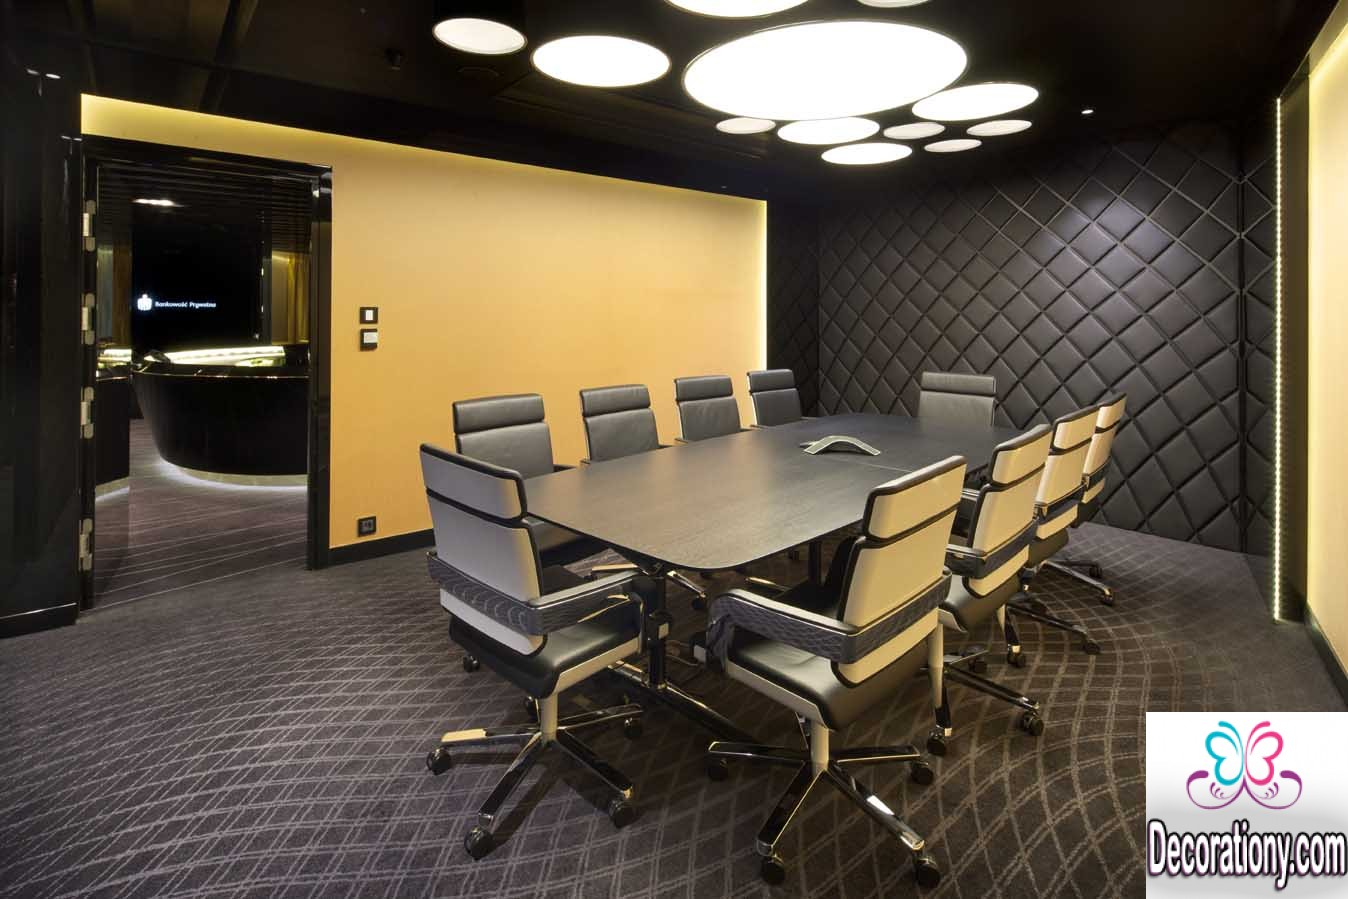 17 splendid office conference room design ideas decor or Small meeting room design ideas